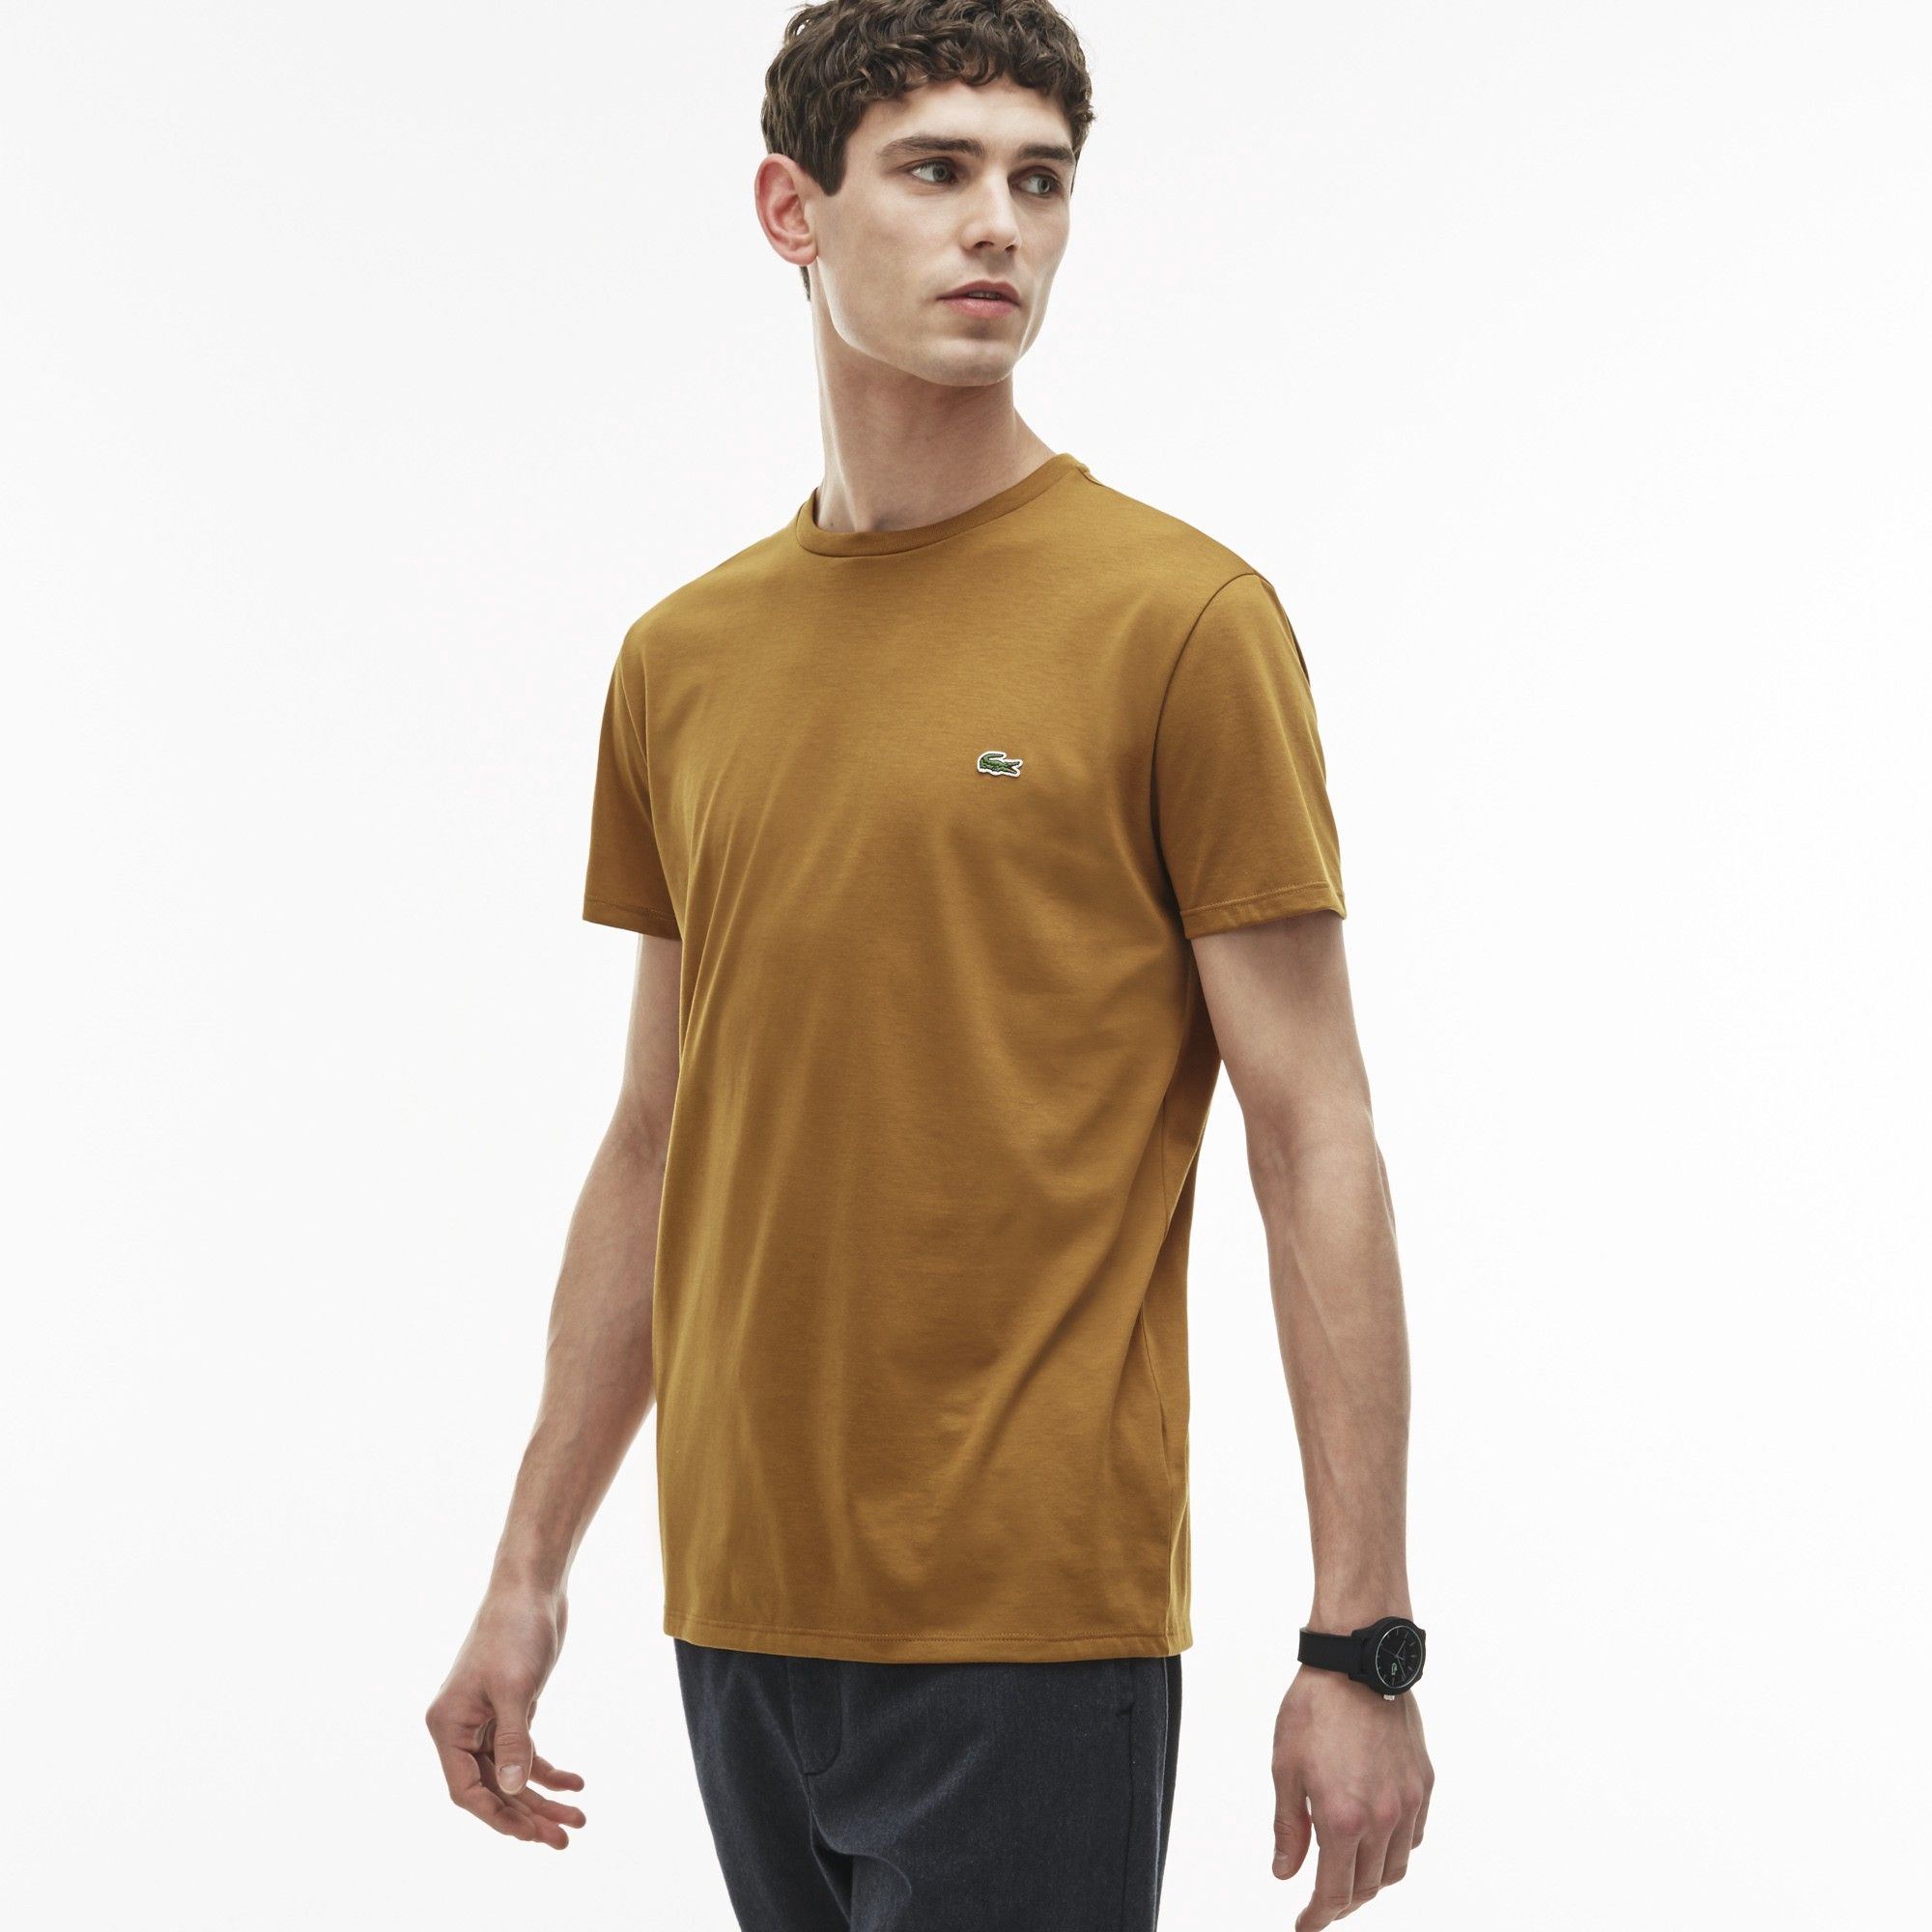 7c4b693f8e LACOSTE Men's Crew Neck Pima Cotton Jersey T-Shirt - renaissance brown. # lacoste #cloth #